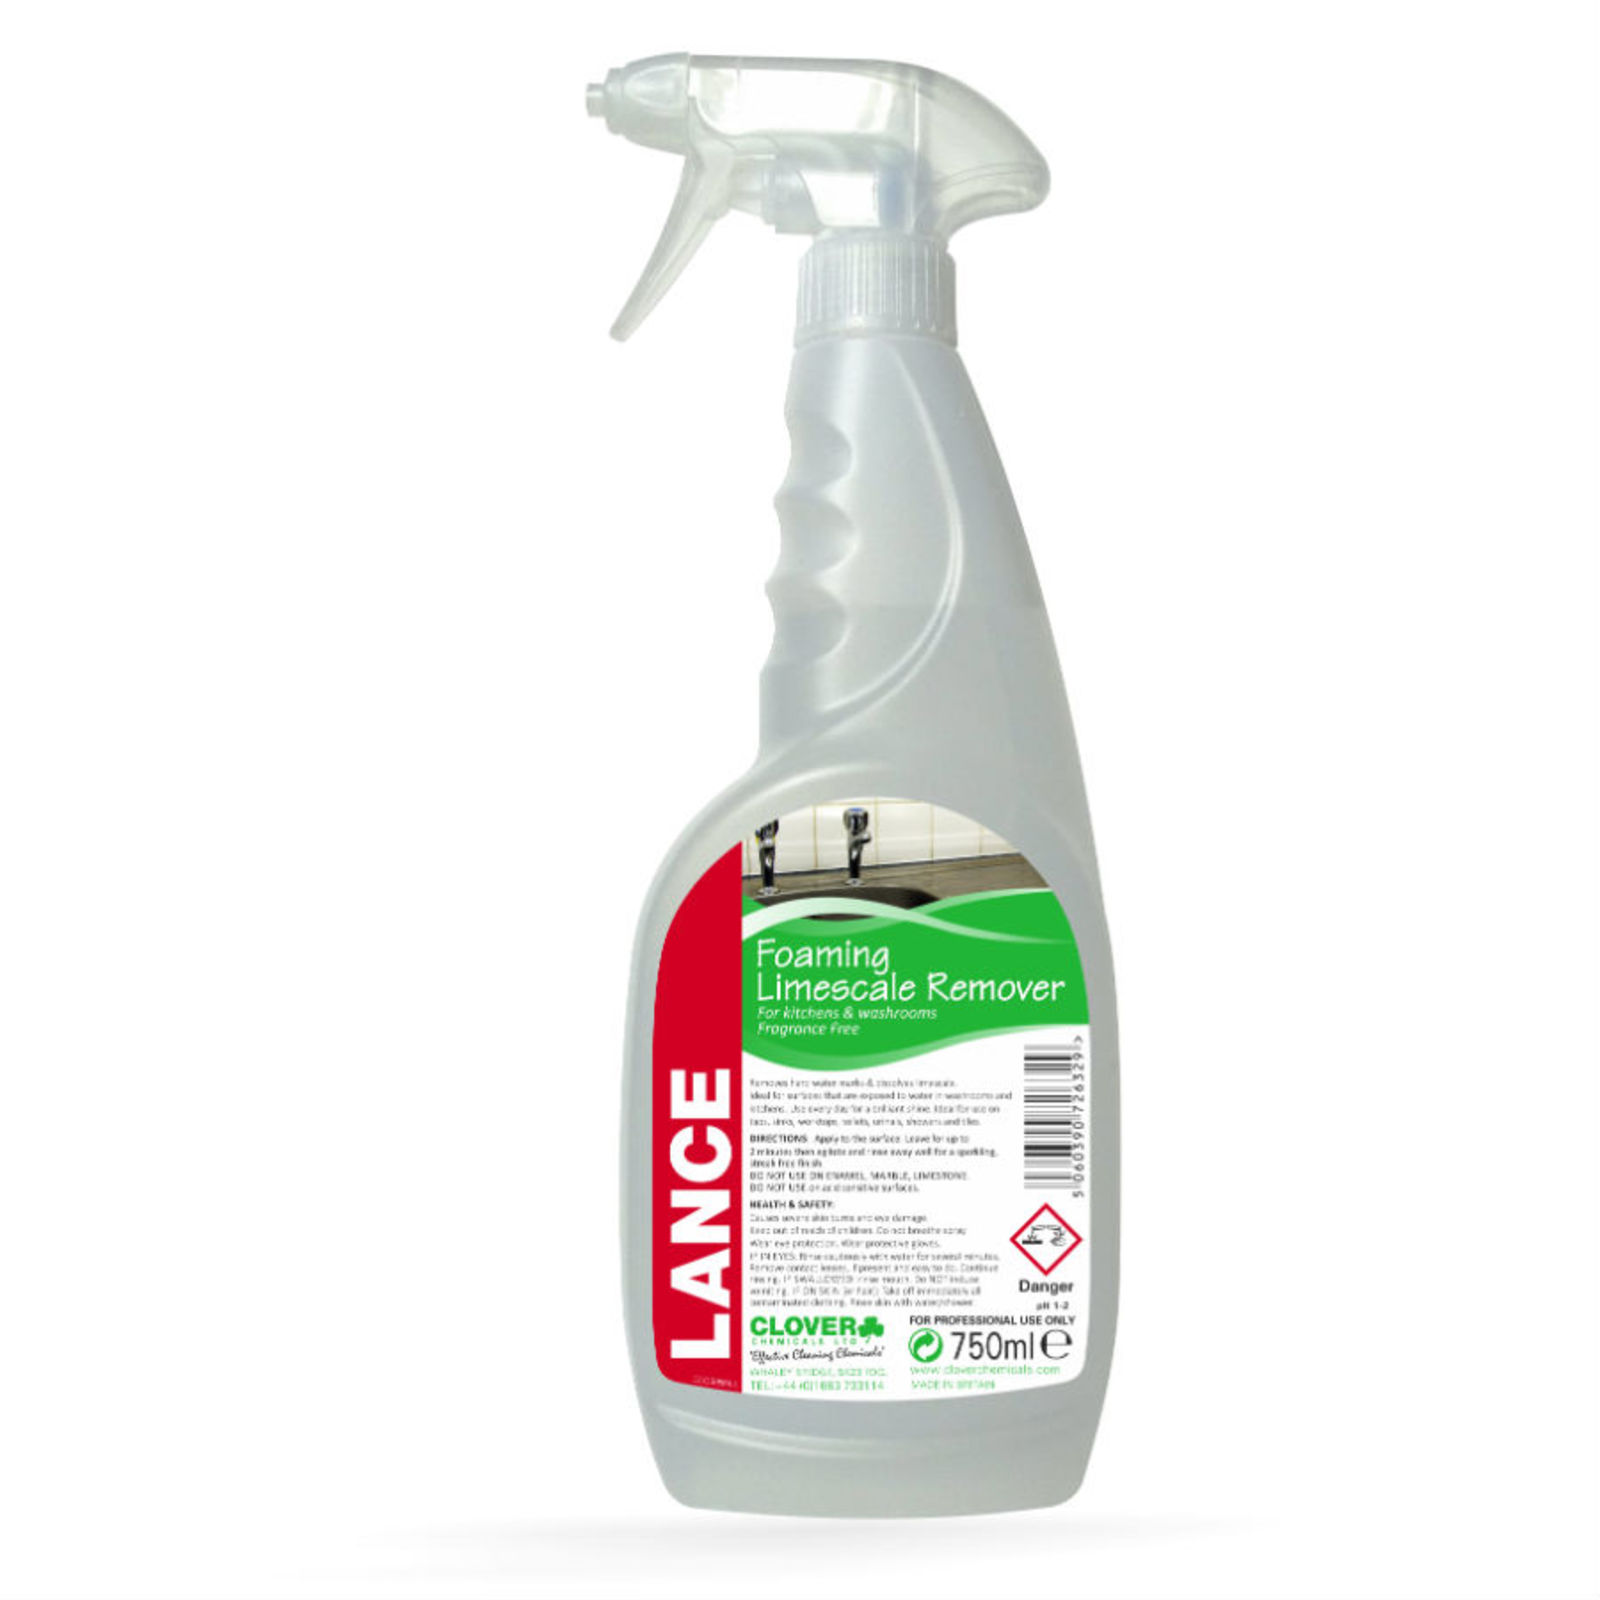 Lance Concentrated Foaming Limescale Remover Spray 750ml (single)